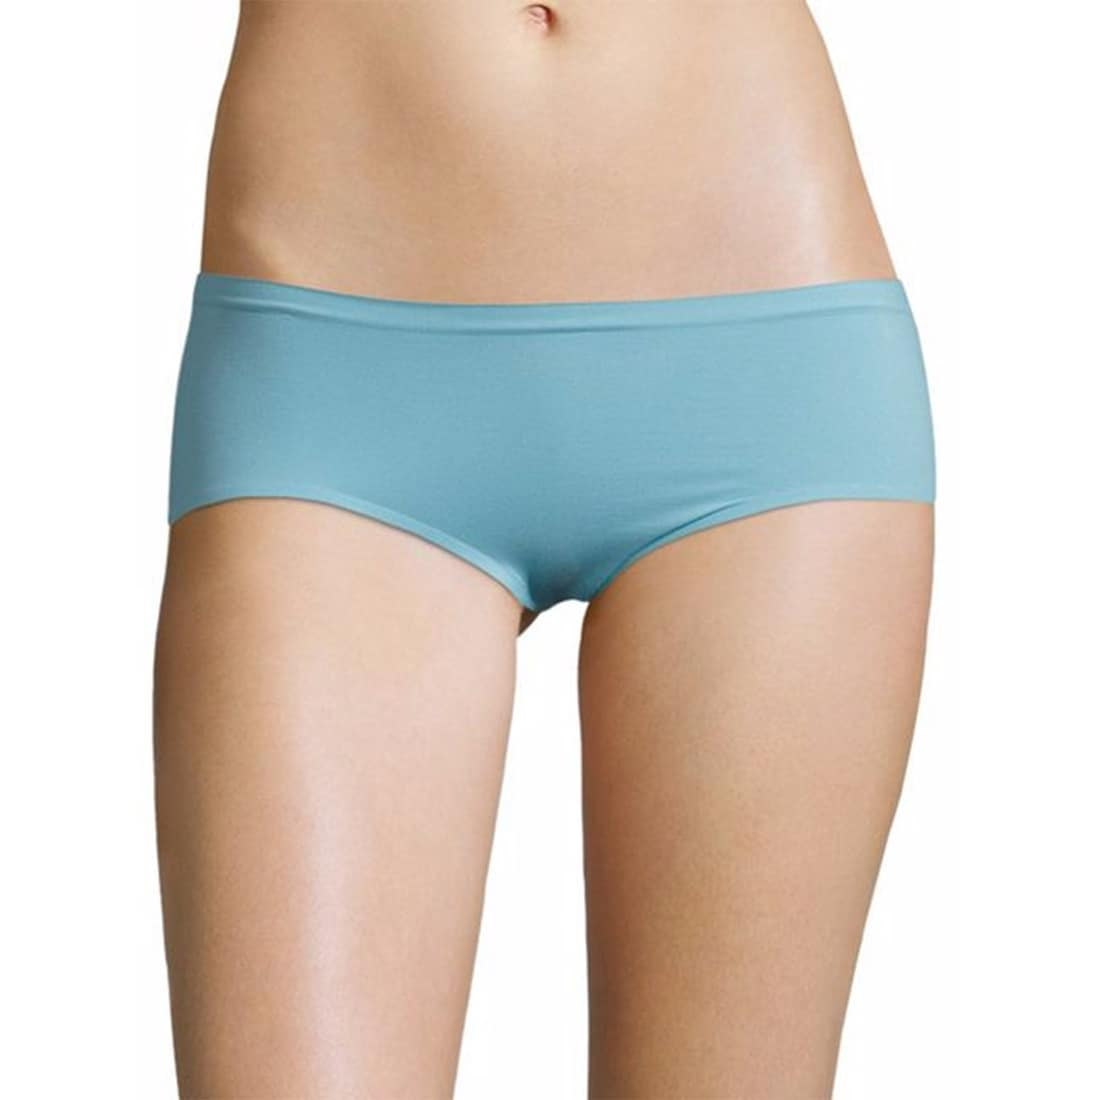 7ca58784d441 Shop Jockey Women's Underwear Seam free Air Hipster 2142 - On Sale - Free  Shipping On Orders Over $45 - Overstock - 20376283